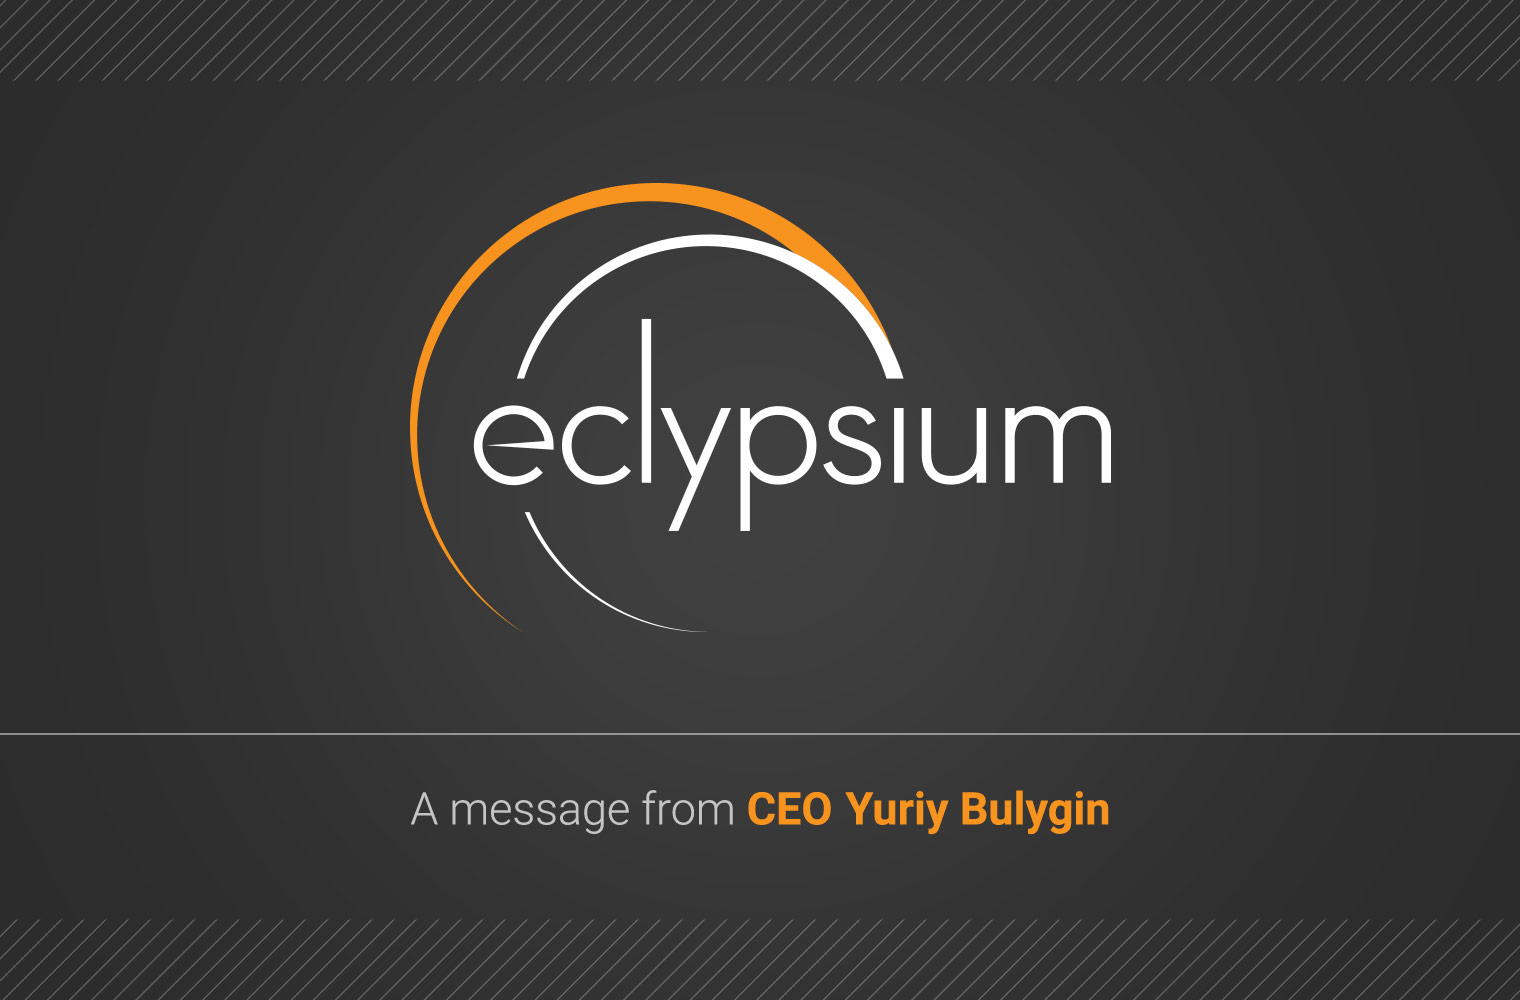 A message from CEO Yuriy Bulygin